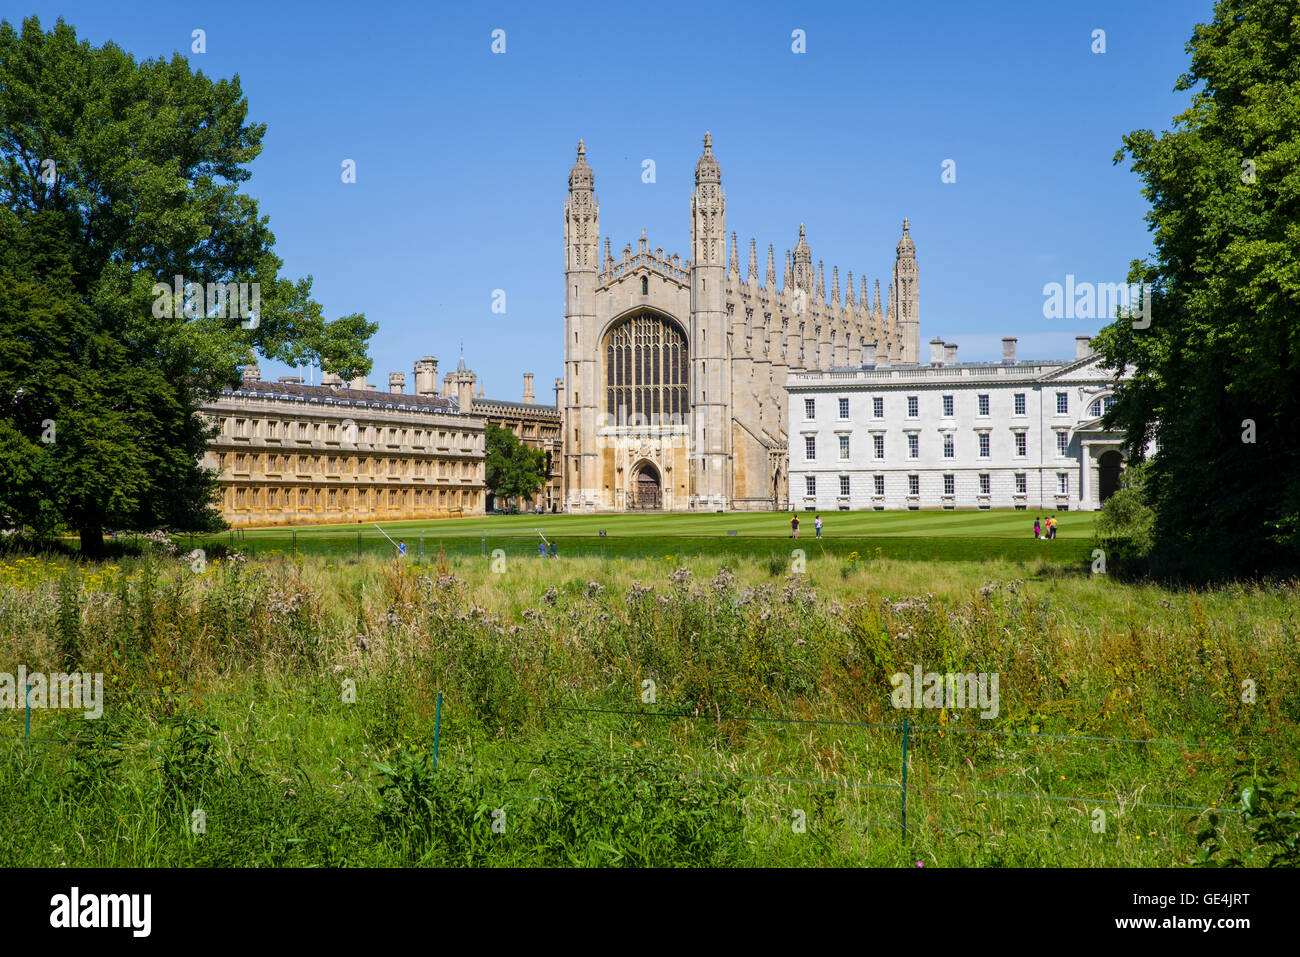 A view of the historic King's College in Cambridge, UK. - Stock Image